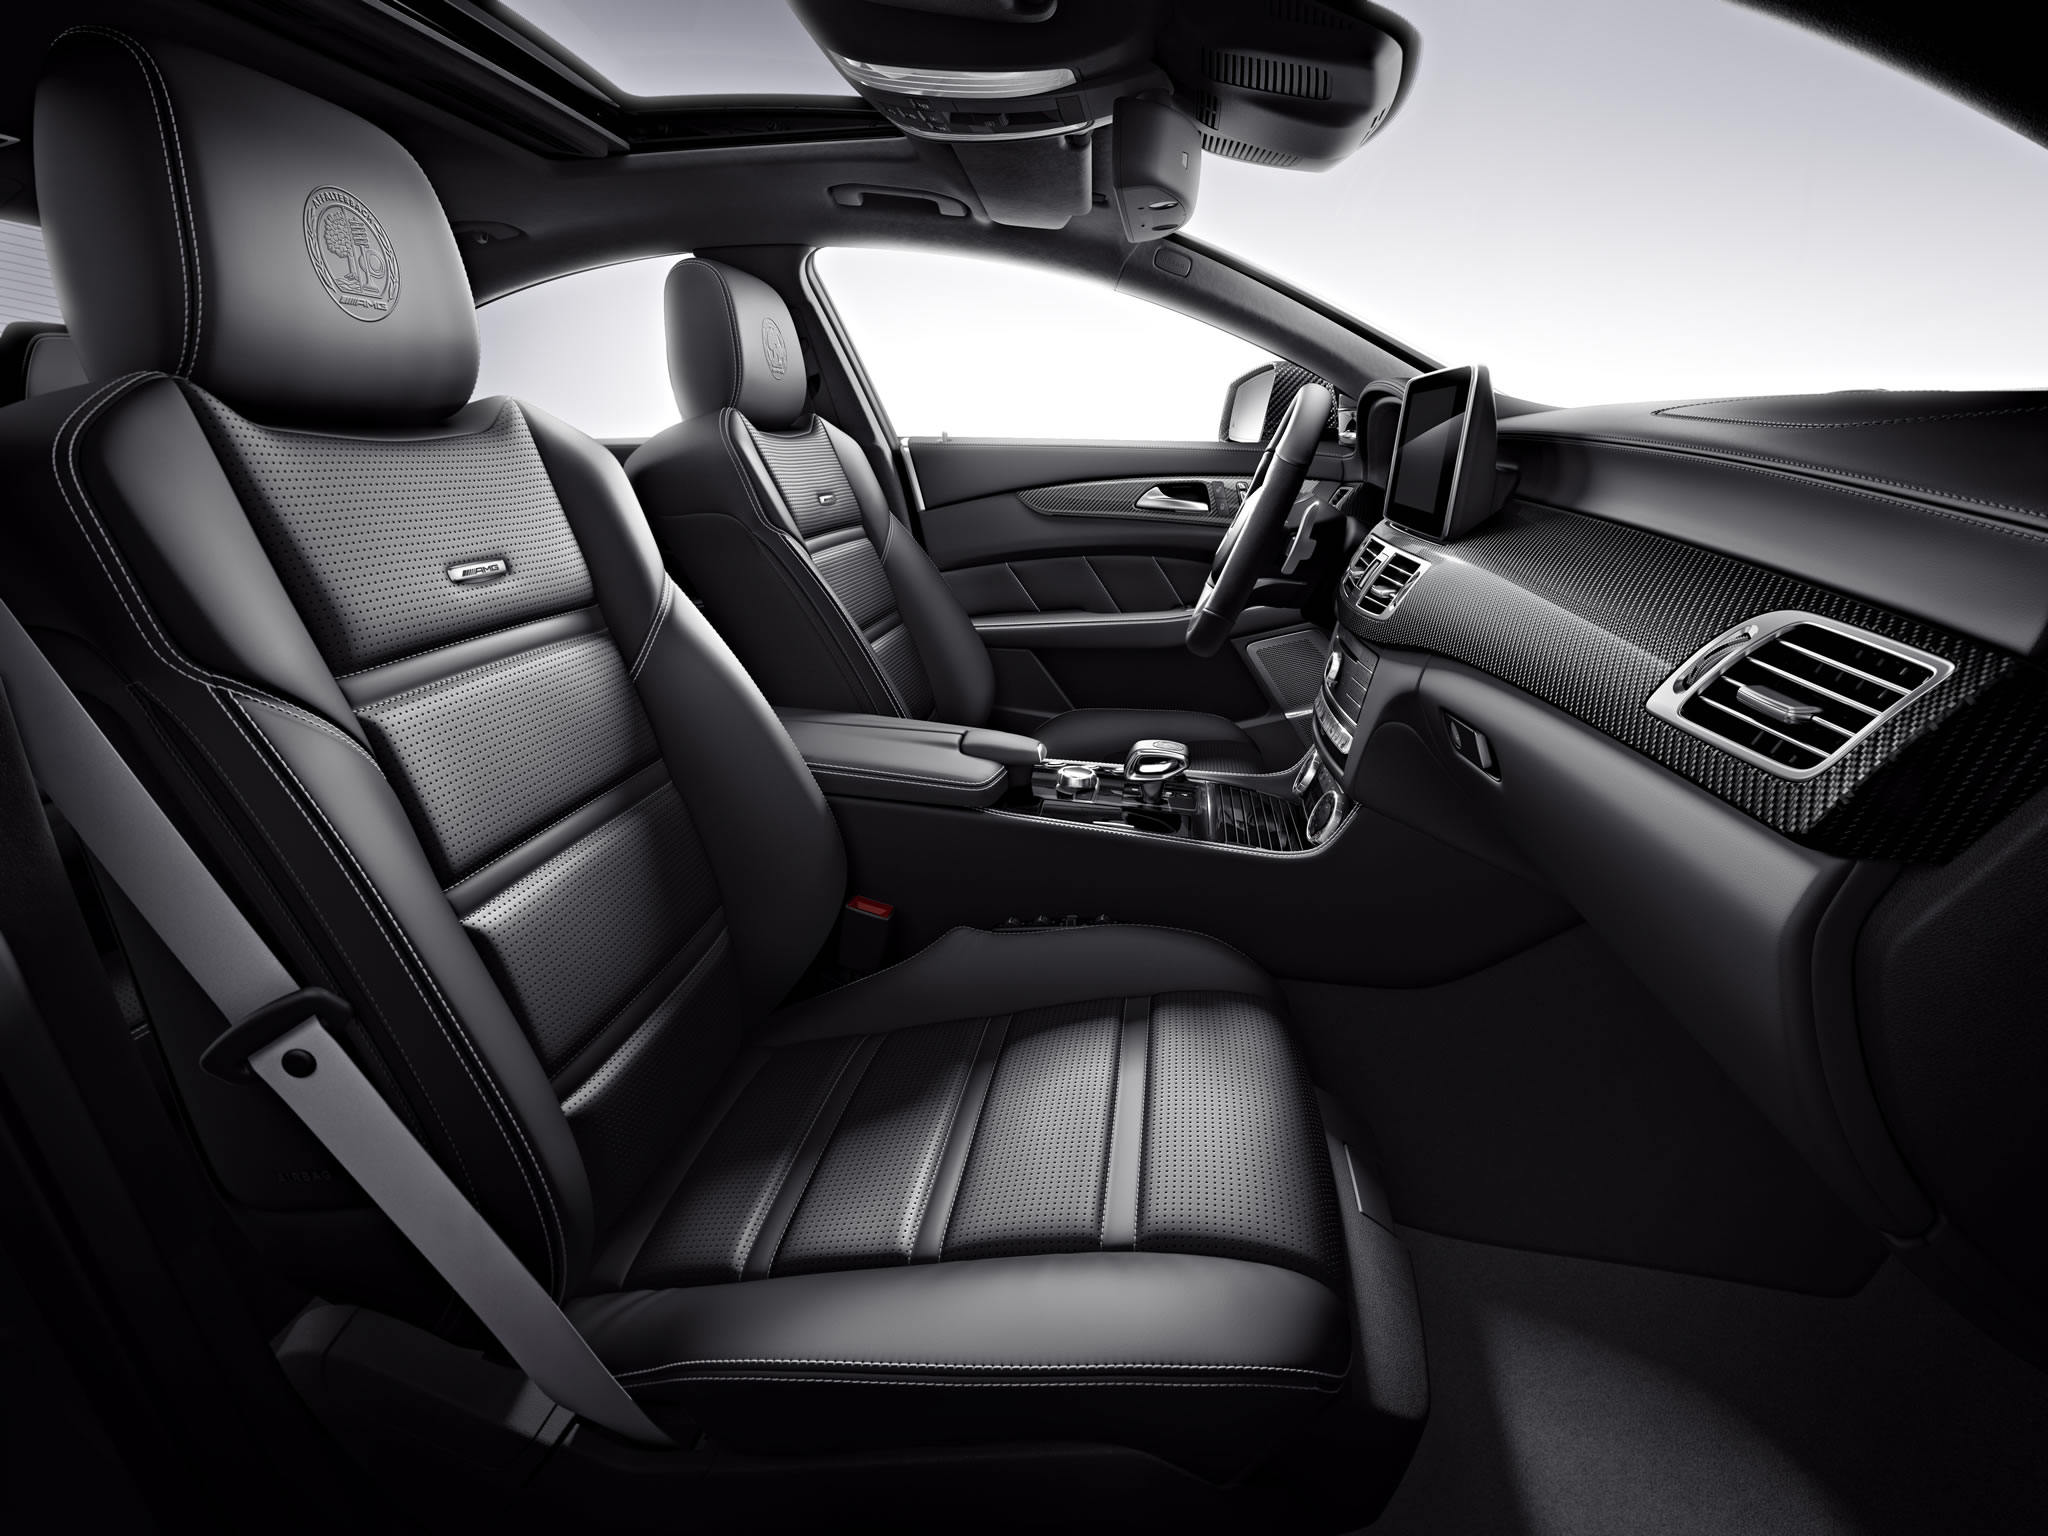 2015 Mercedes Benz Cls63 Amg Interior Photo Seats Size